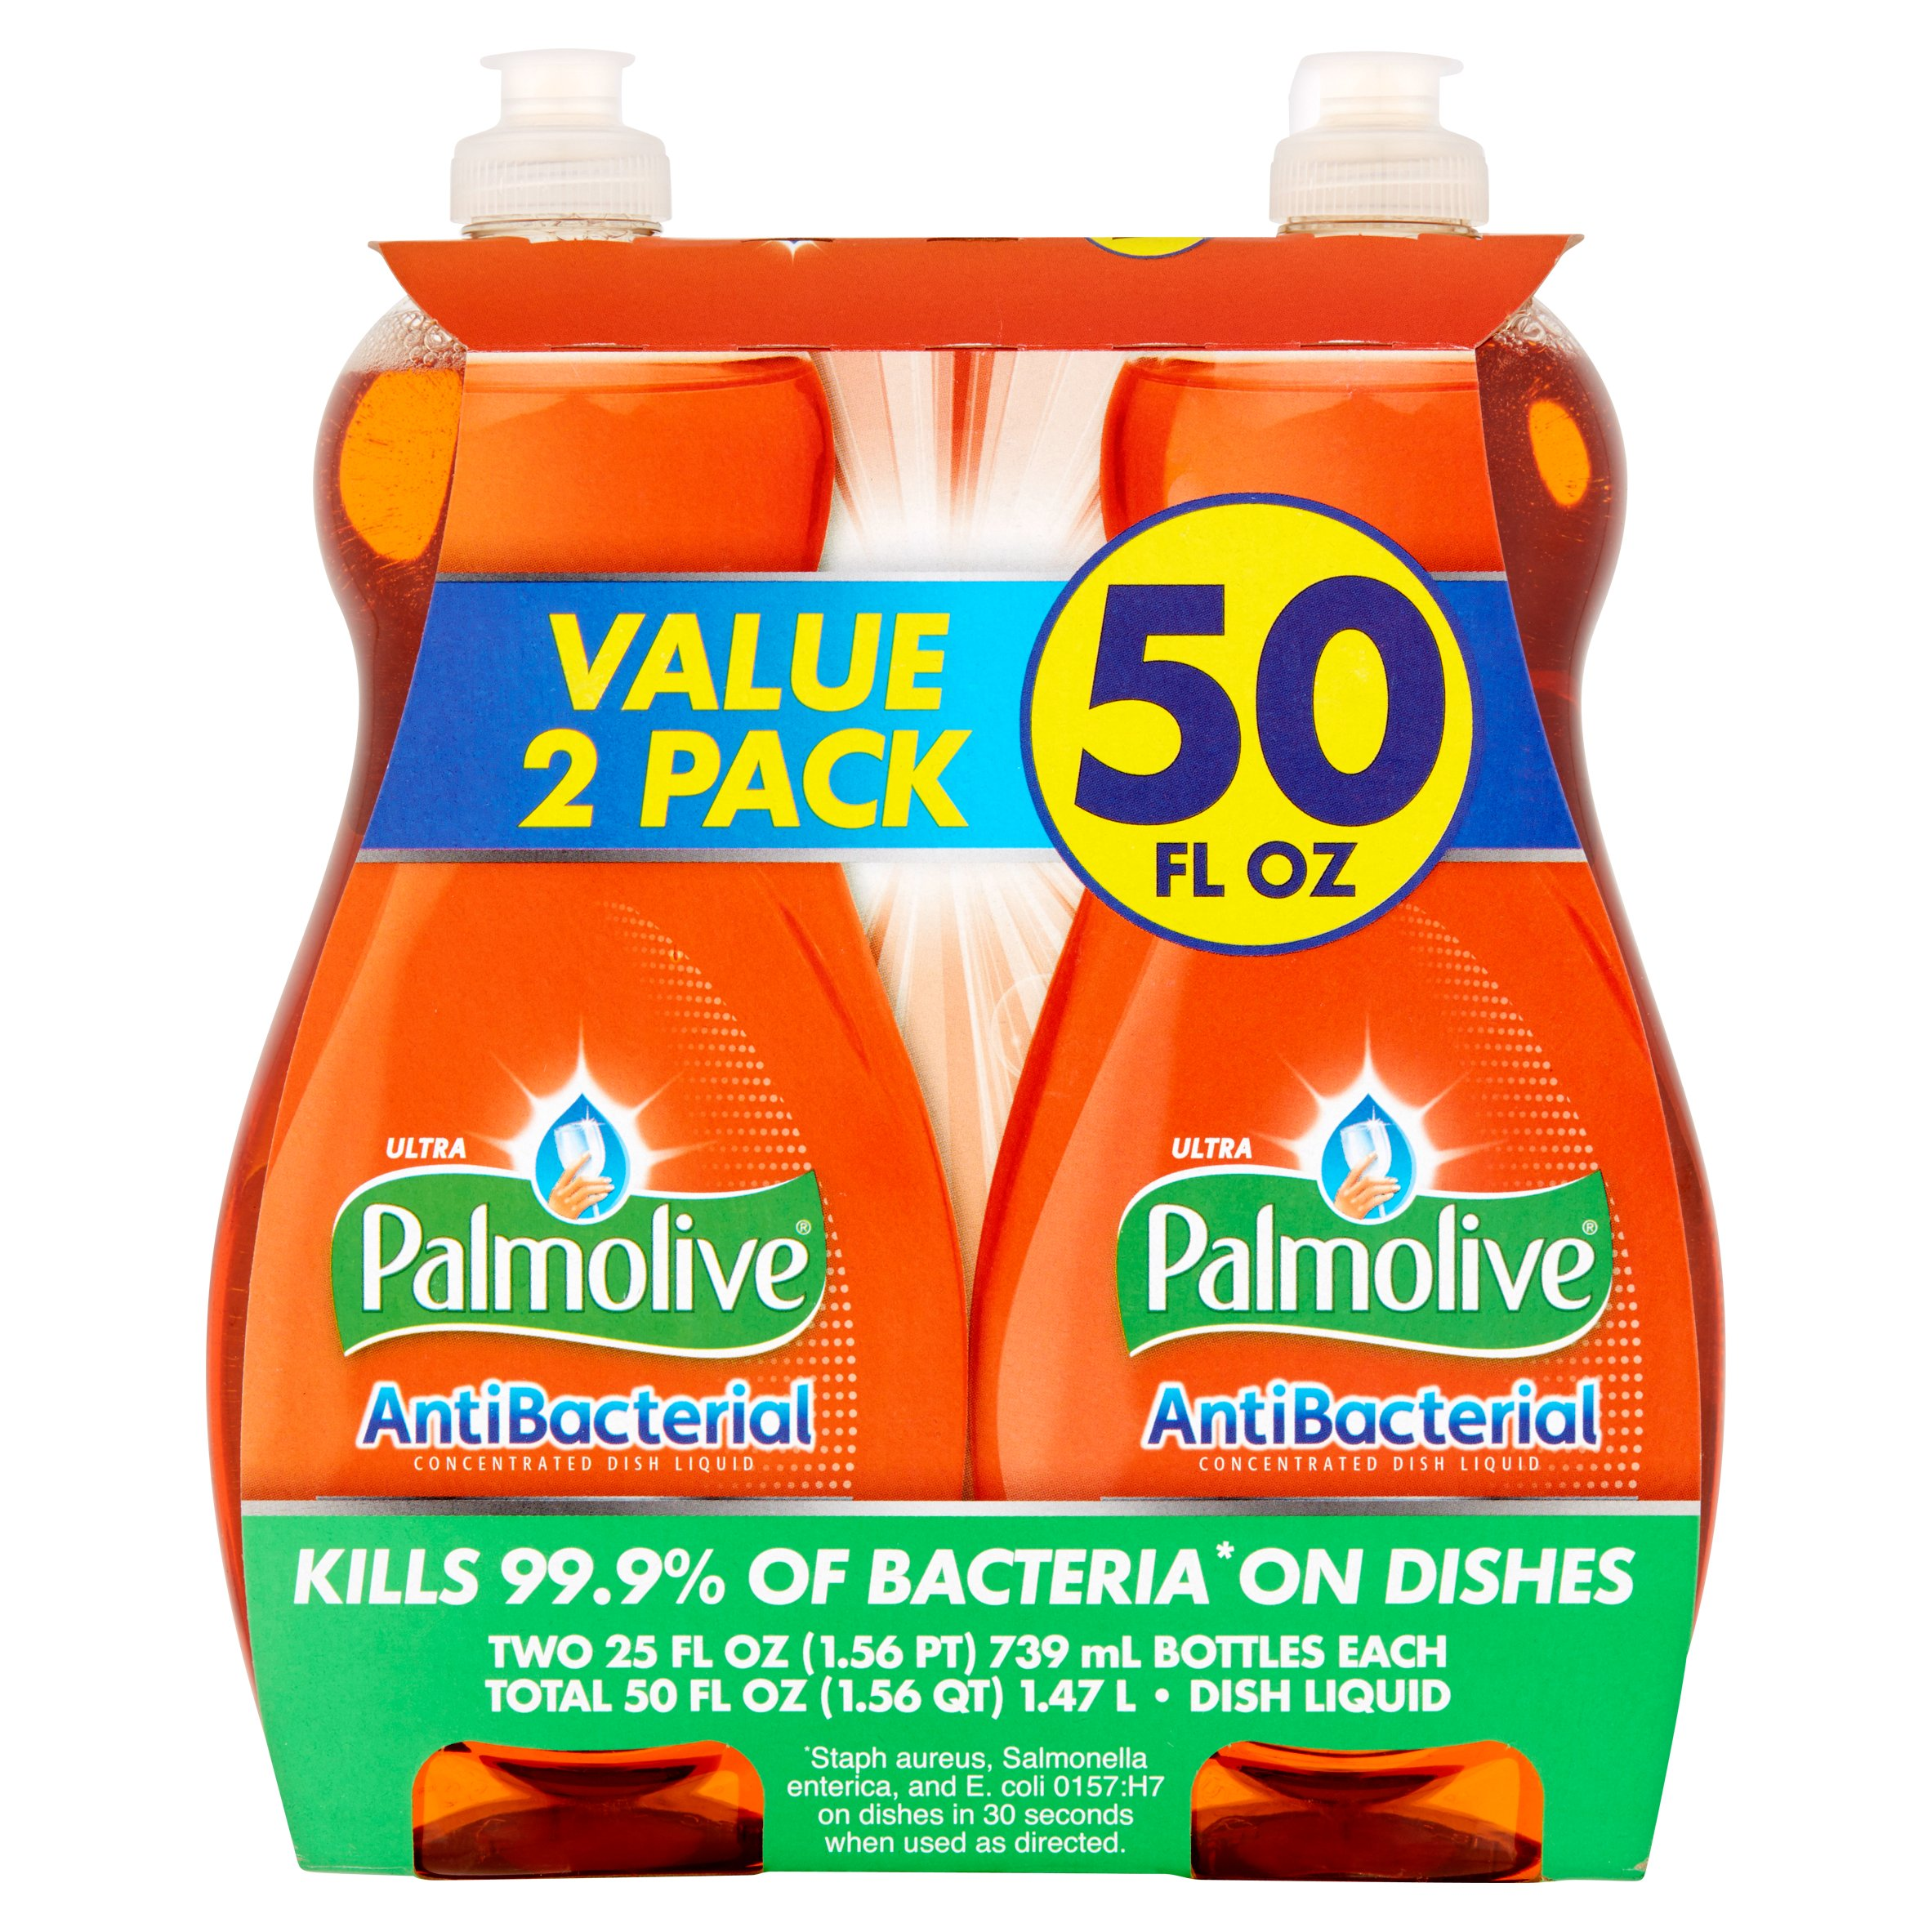 Palmolive Ultra Dish Liquid, Antibacterial, 25 fl oz Twin Pack